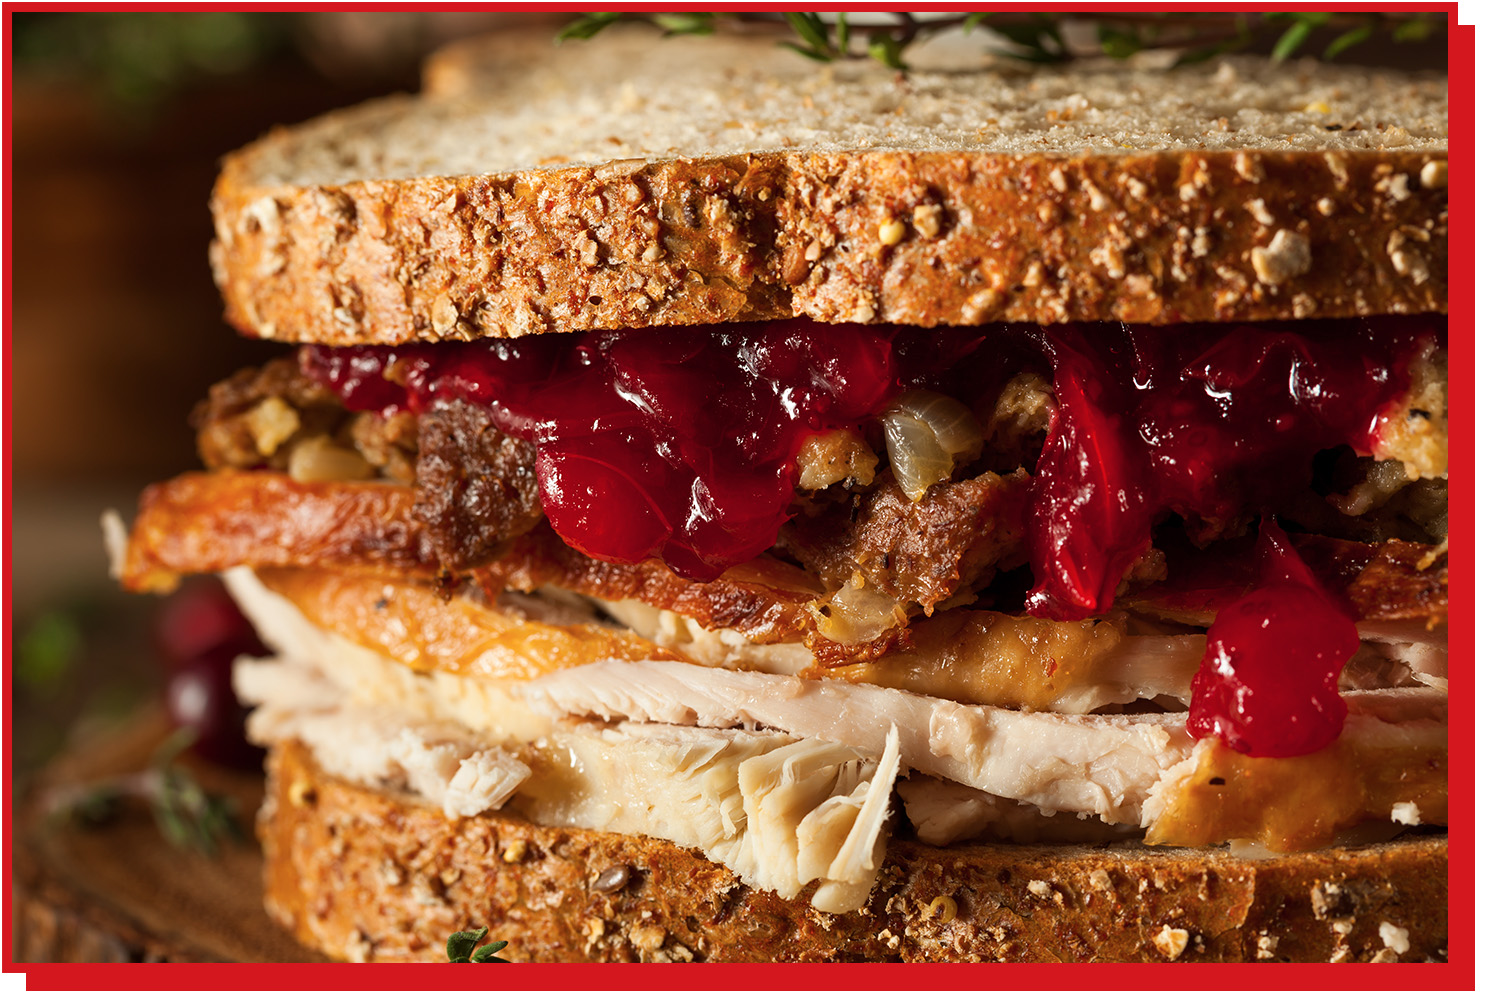 Sandwich with turkey, cranberry sauce, and stuffing in between two slices of bread.